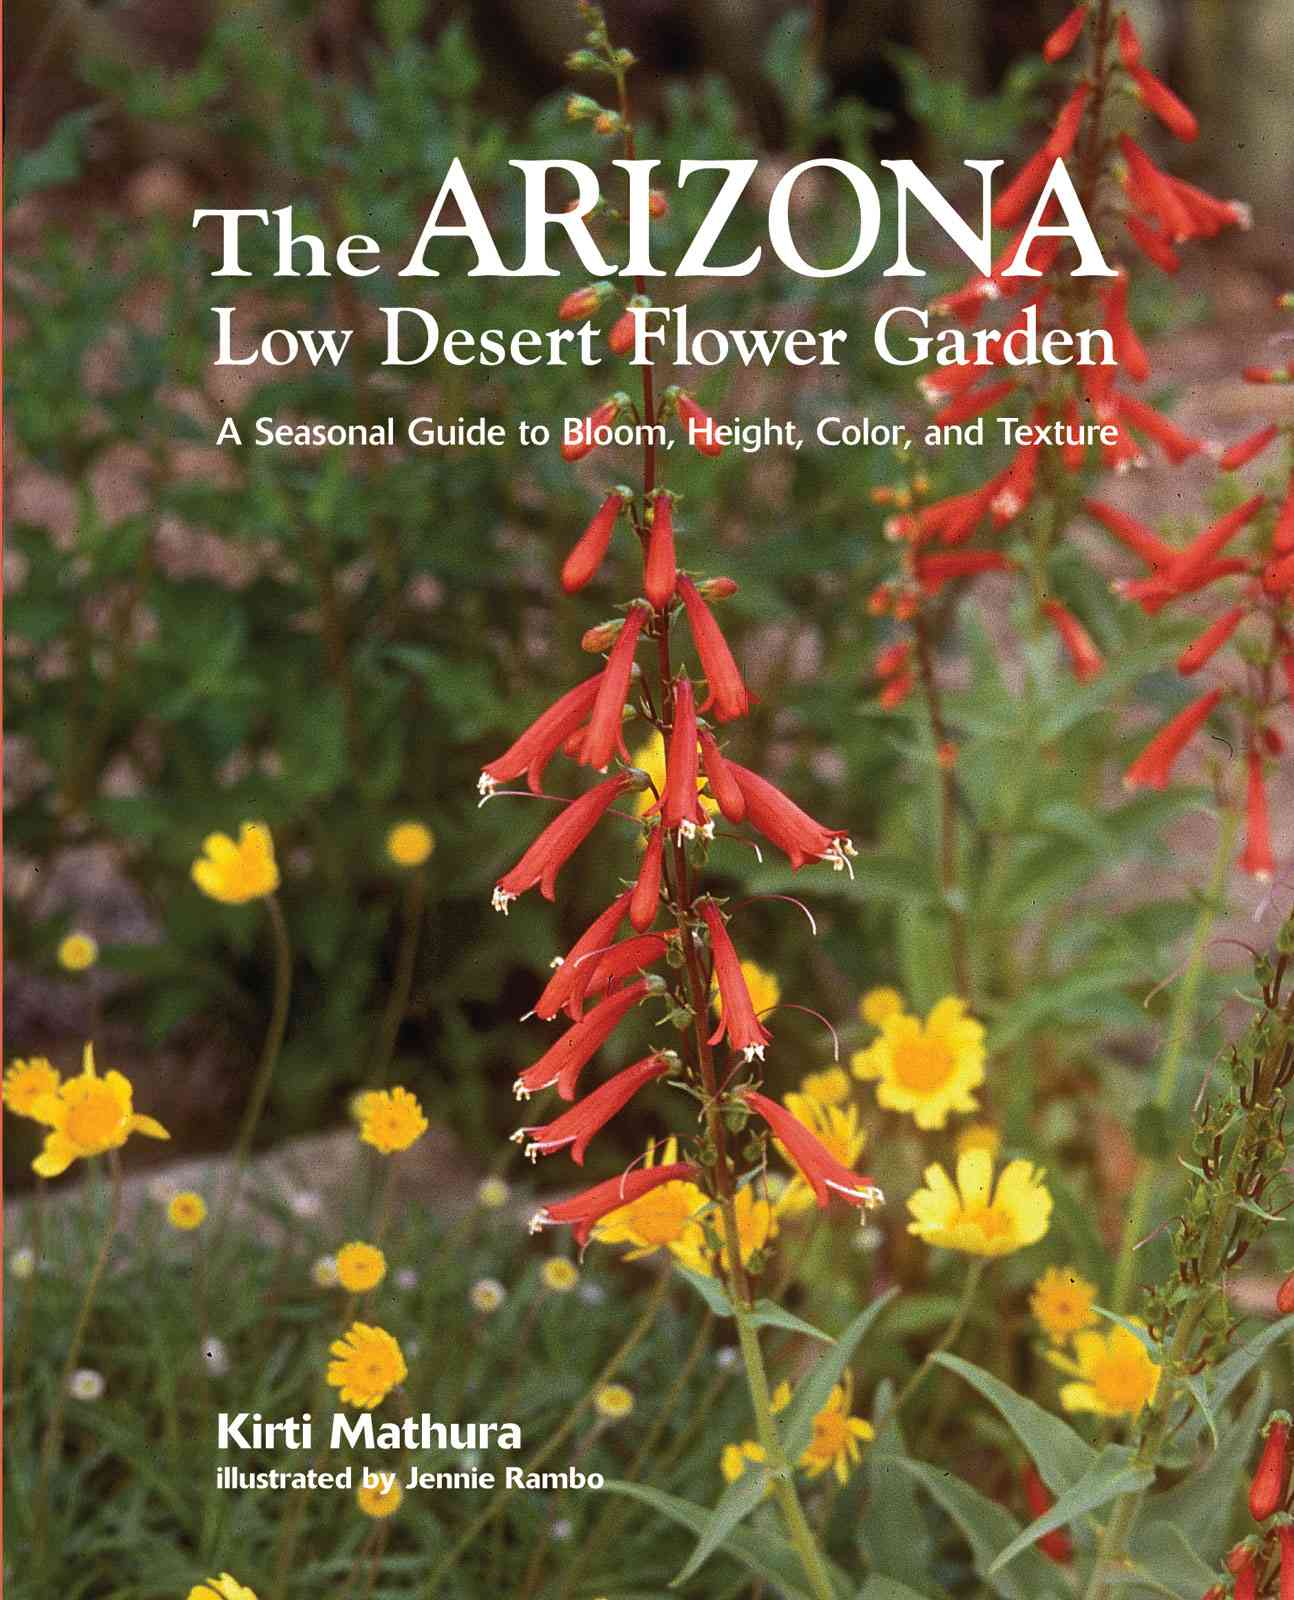 The Arizona Low Desert Flower Garden: A Seasonal Guide to Bloom, Height, Color, and Texture (Hardcover)